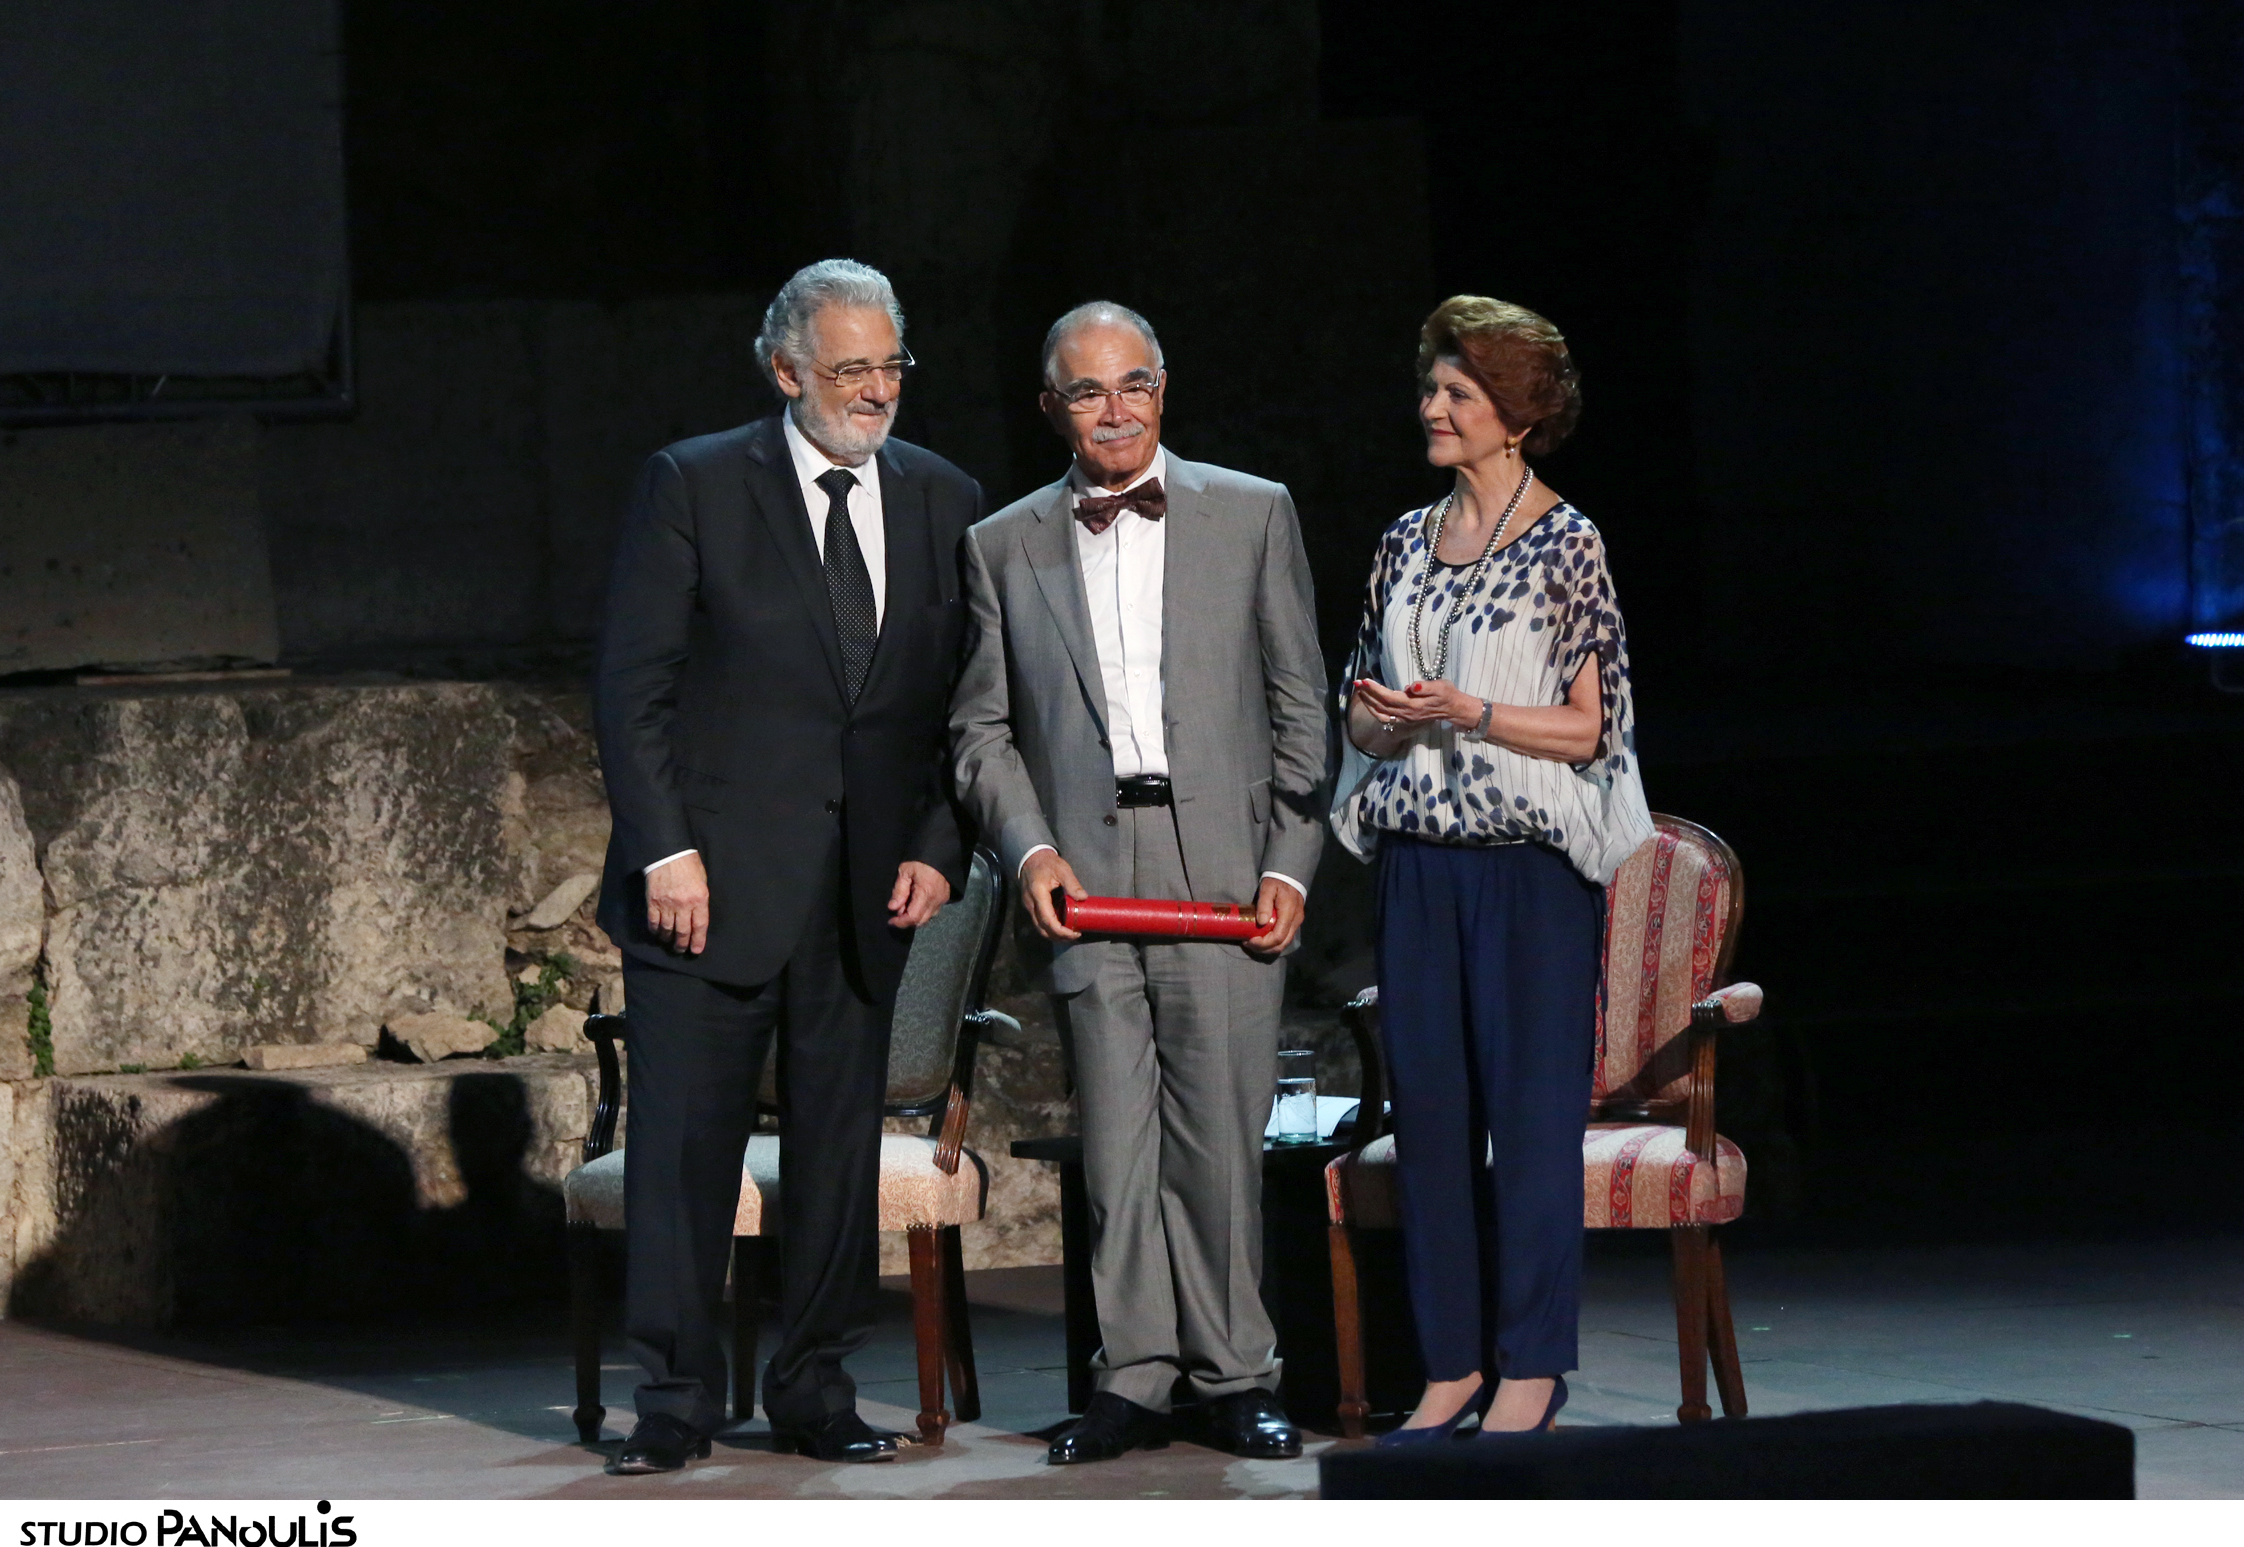 Plácido Domingo, Commissioner Vassiliou and Denis de Kergorlay applauded the exceptional restoration of the Propylaea Central Building